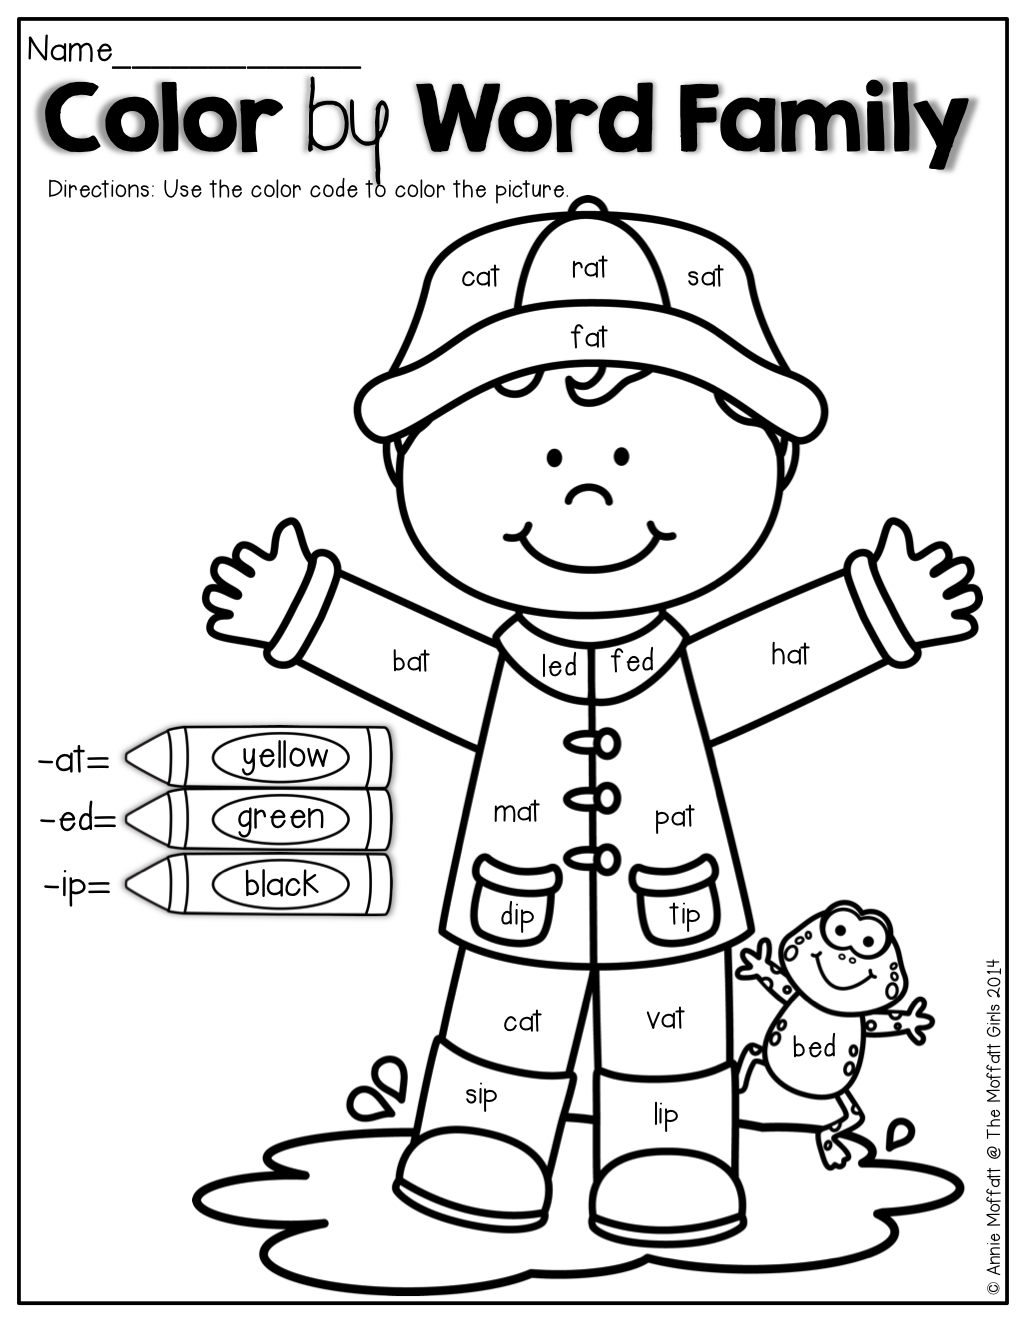 language arts coloring pages printable free | Color by Word Family! | KinderLand Collaborative ...